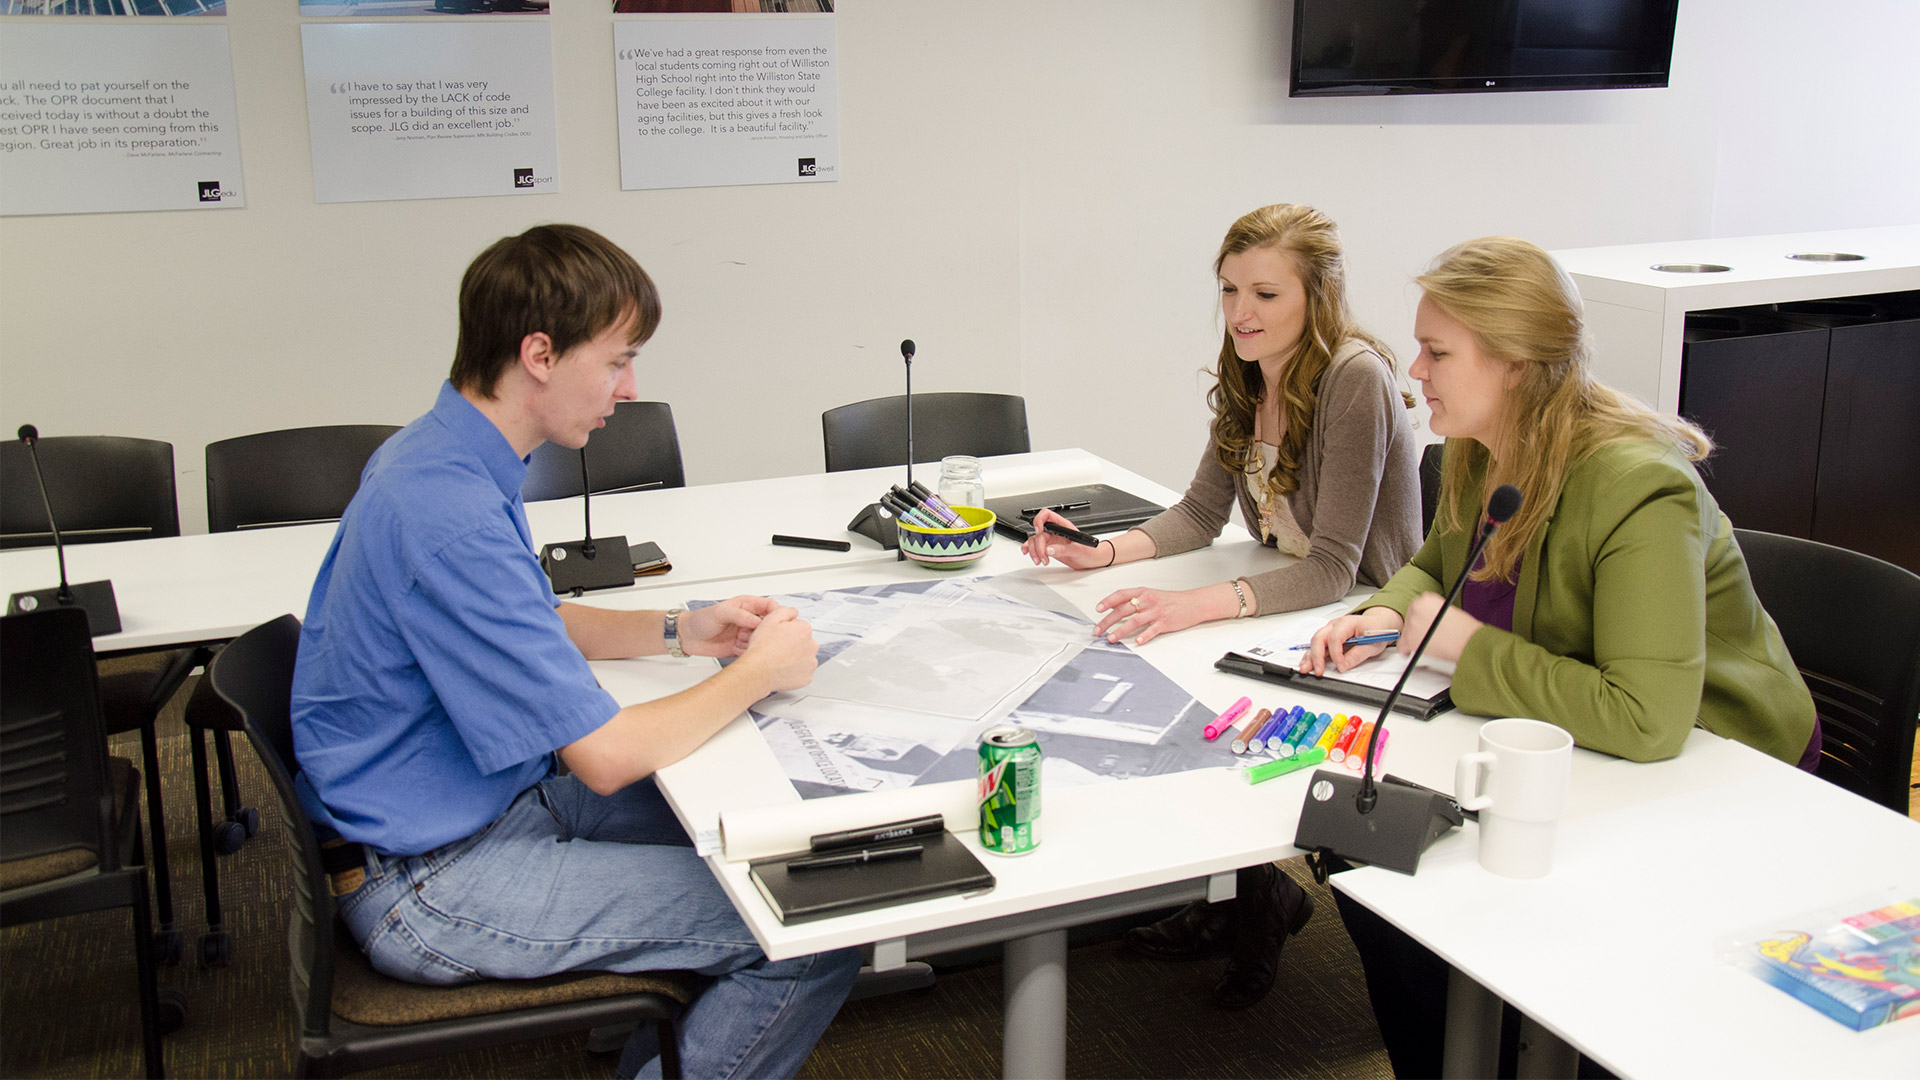 Two interns working with a mentor